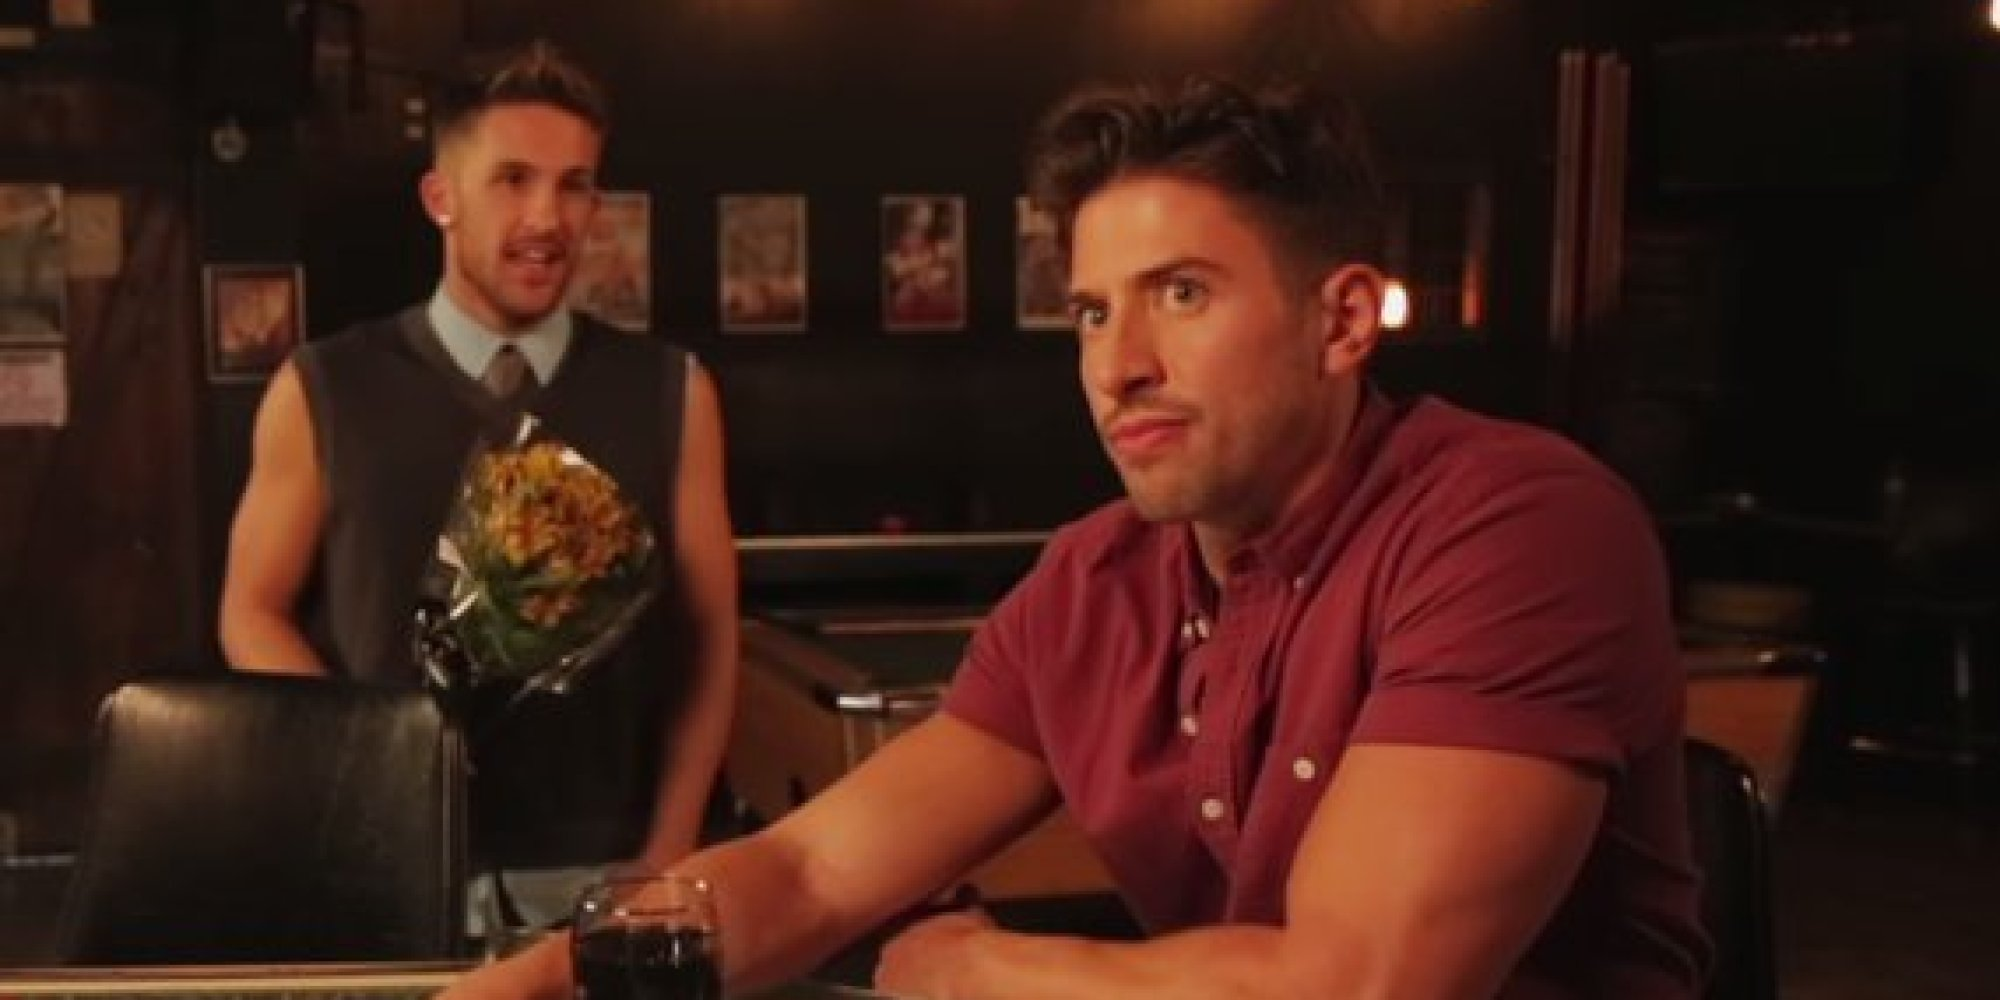 gay guys dating b Surge is the most convenient way to meet gay guys nearby grizzly is a social networking dating app to meet & chat with hot gay men nearby scruff.